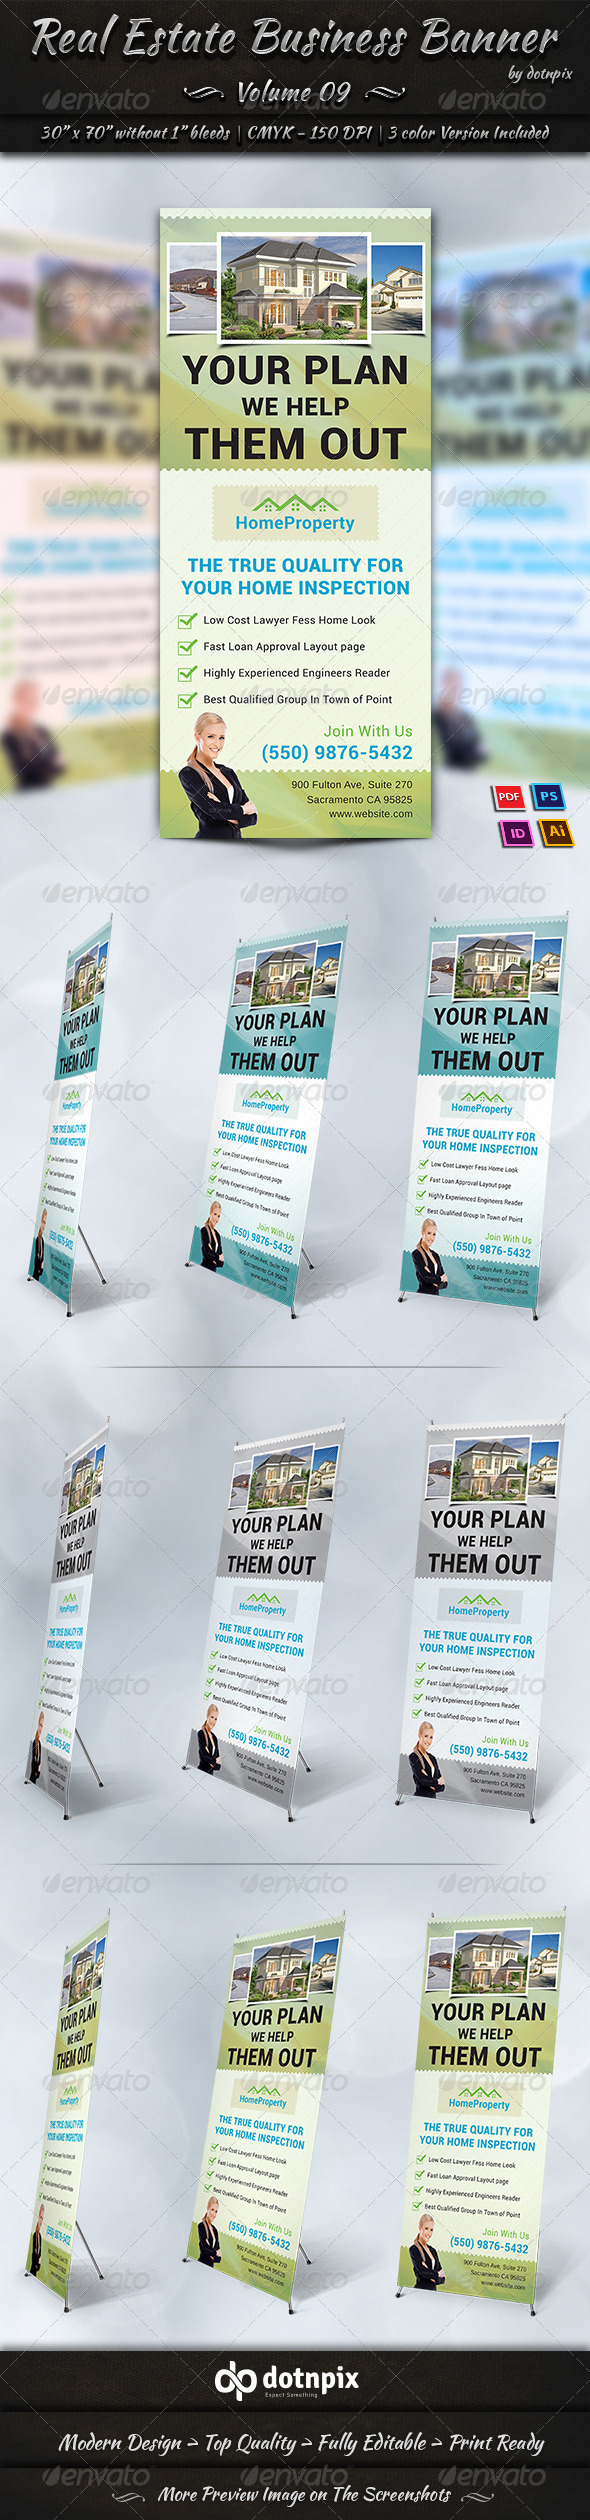 GraphicRiver Real Estate Business Banner Volume 9 7232897